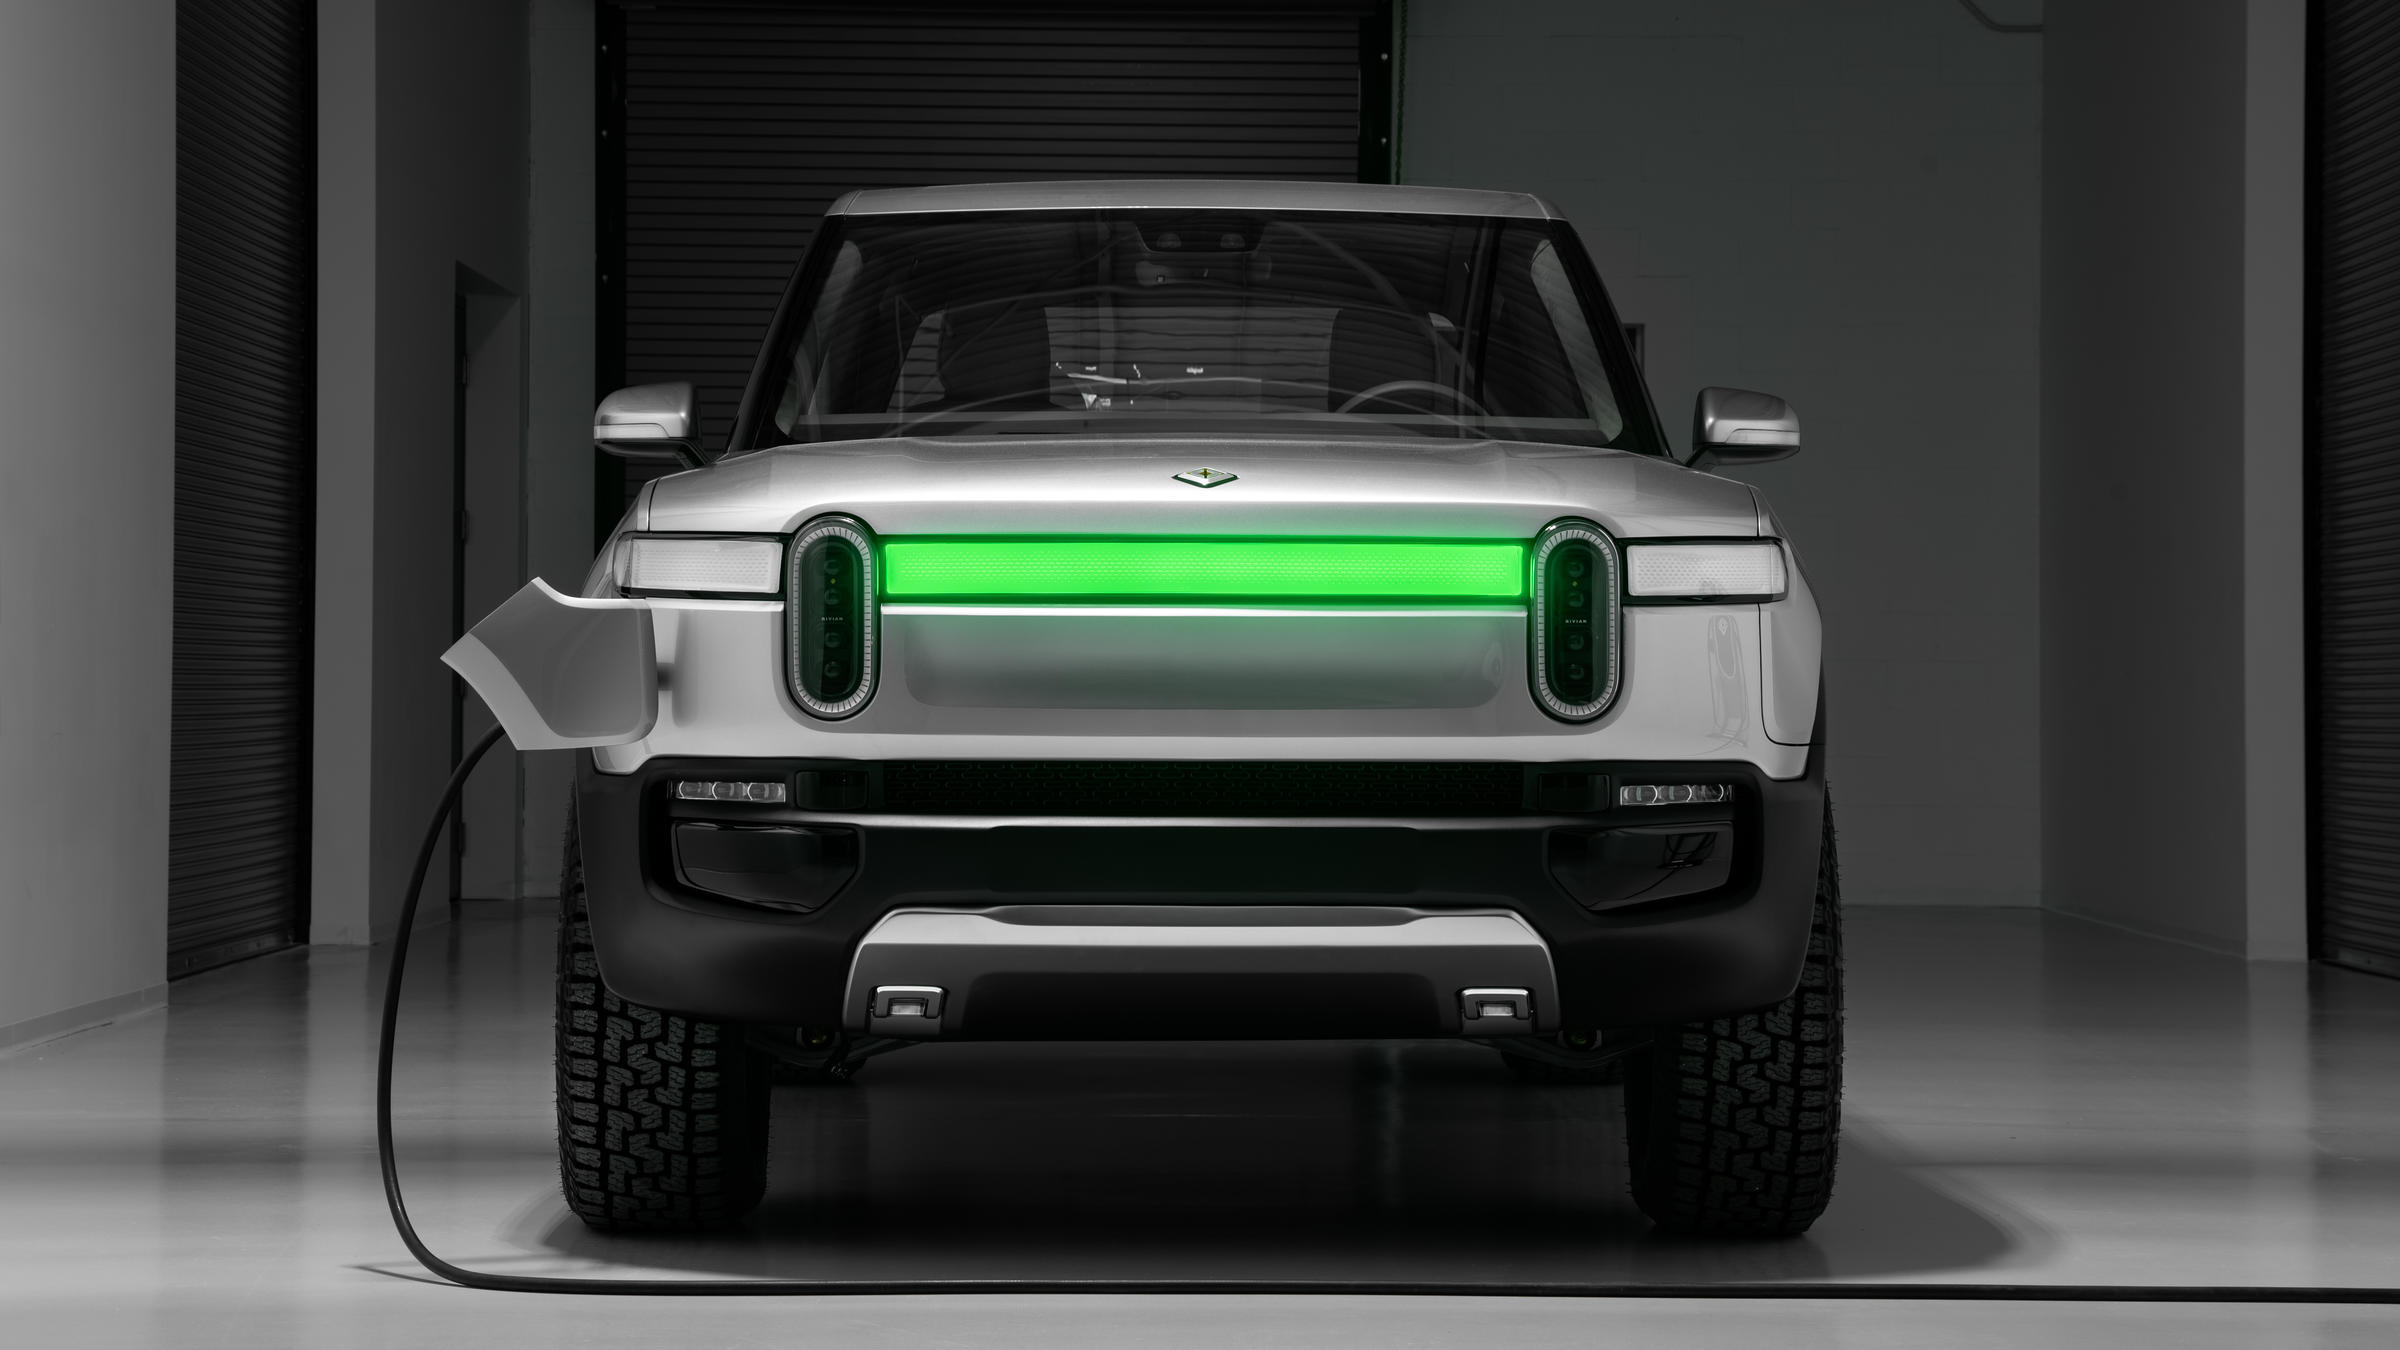 Rivian A Startup Plans To Make Battery Ed Trucks And Suvs In Former Auto Plant Central Illinois